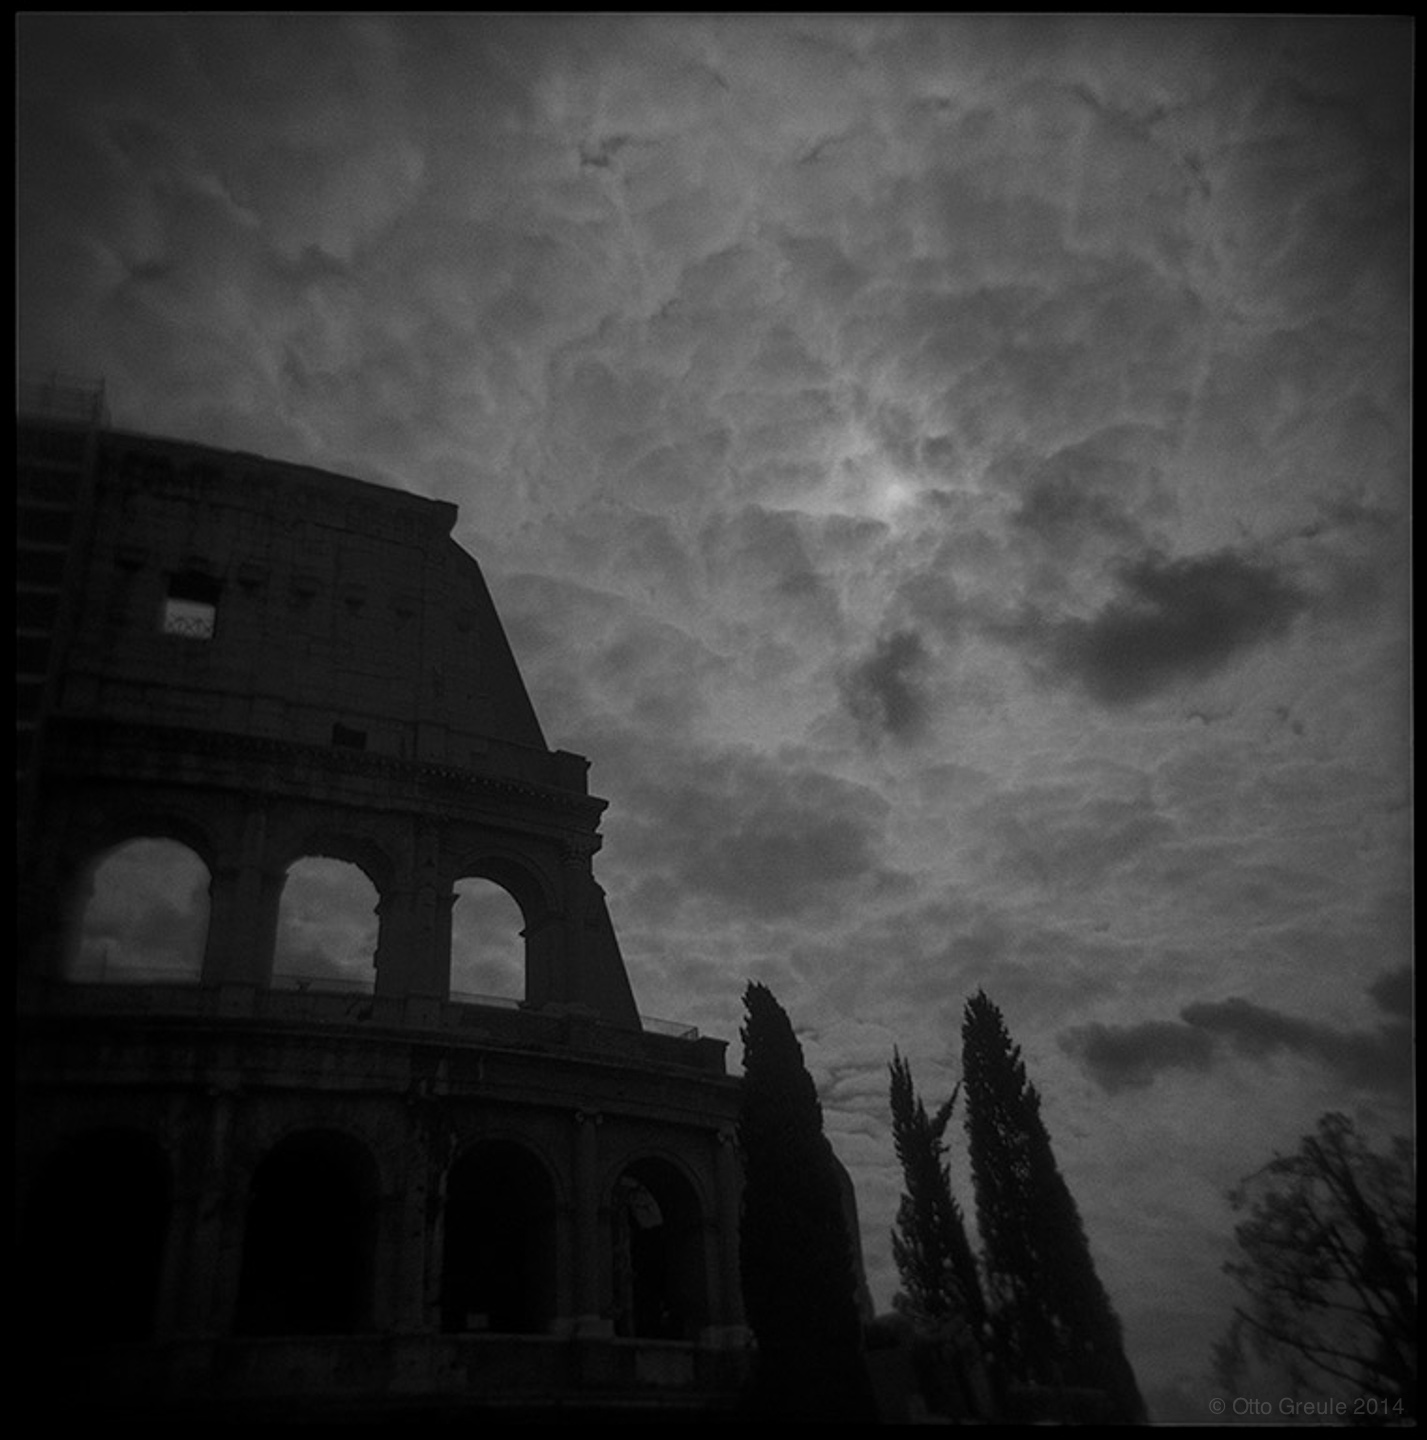 Afternoon Sky and Coliseum, Rome, Italy.